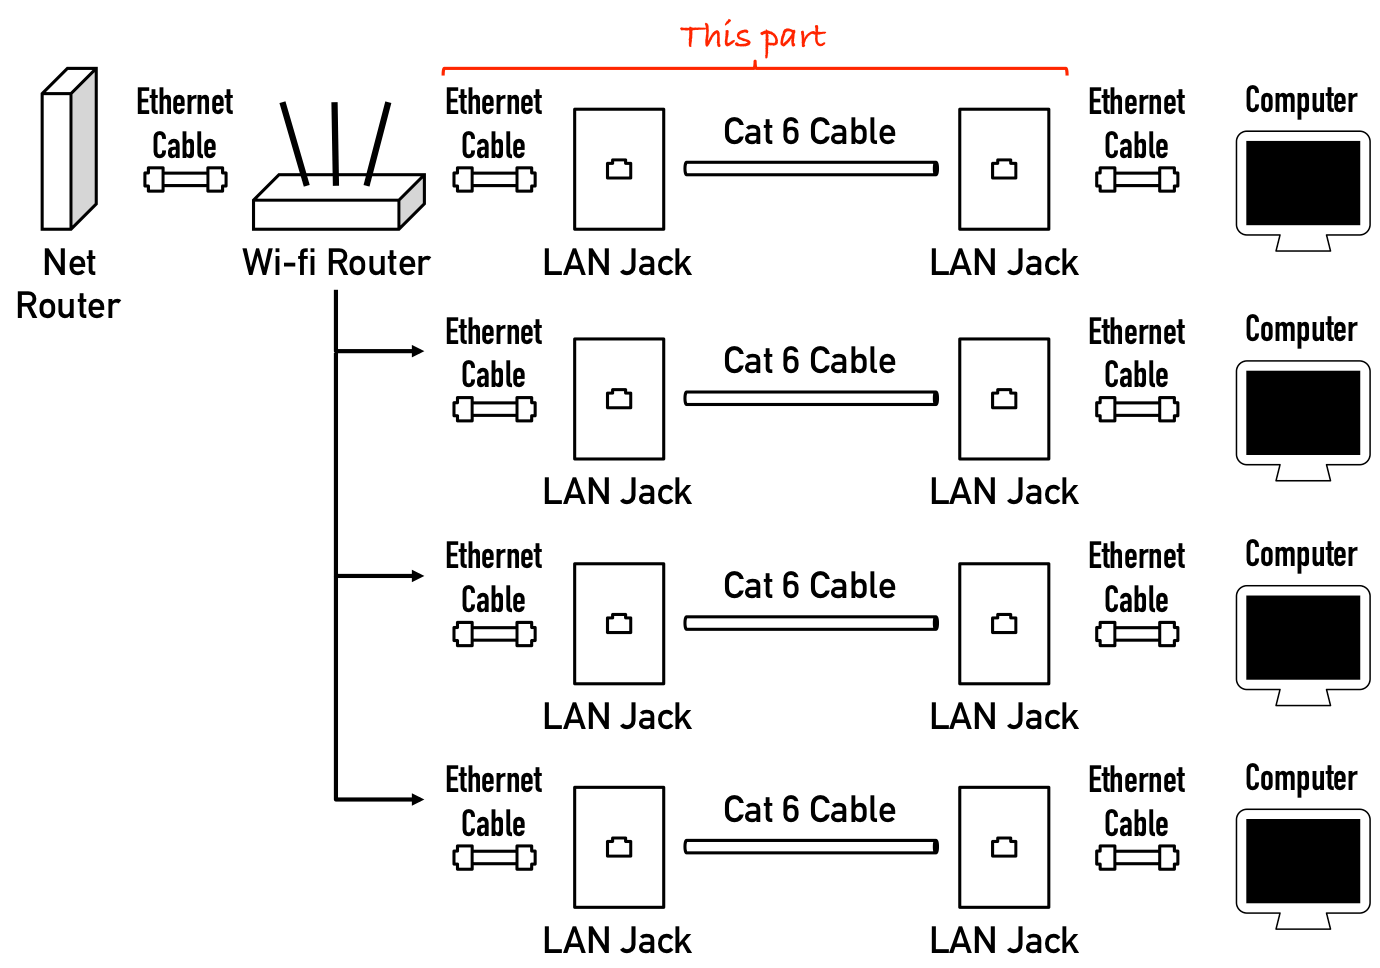 hight resolution of internet cable diagram wiring diagram expert rj45 wiring diagram for internet internet cable wiring diagram wiring